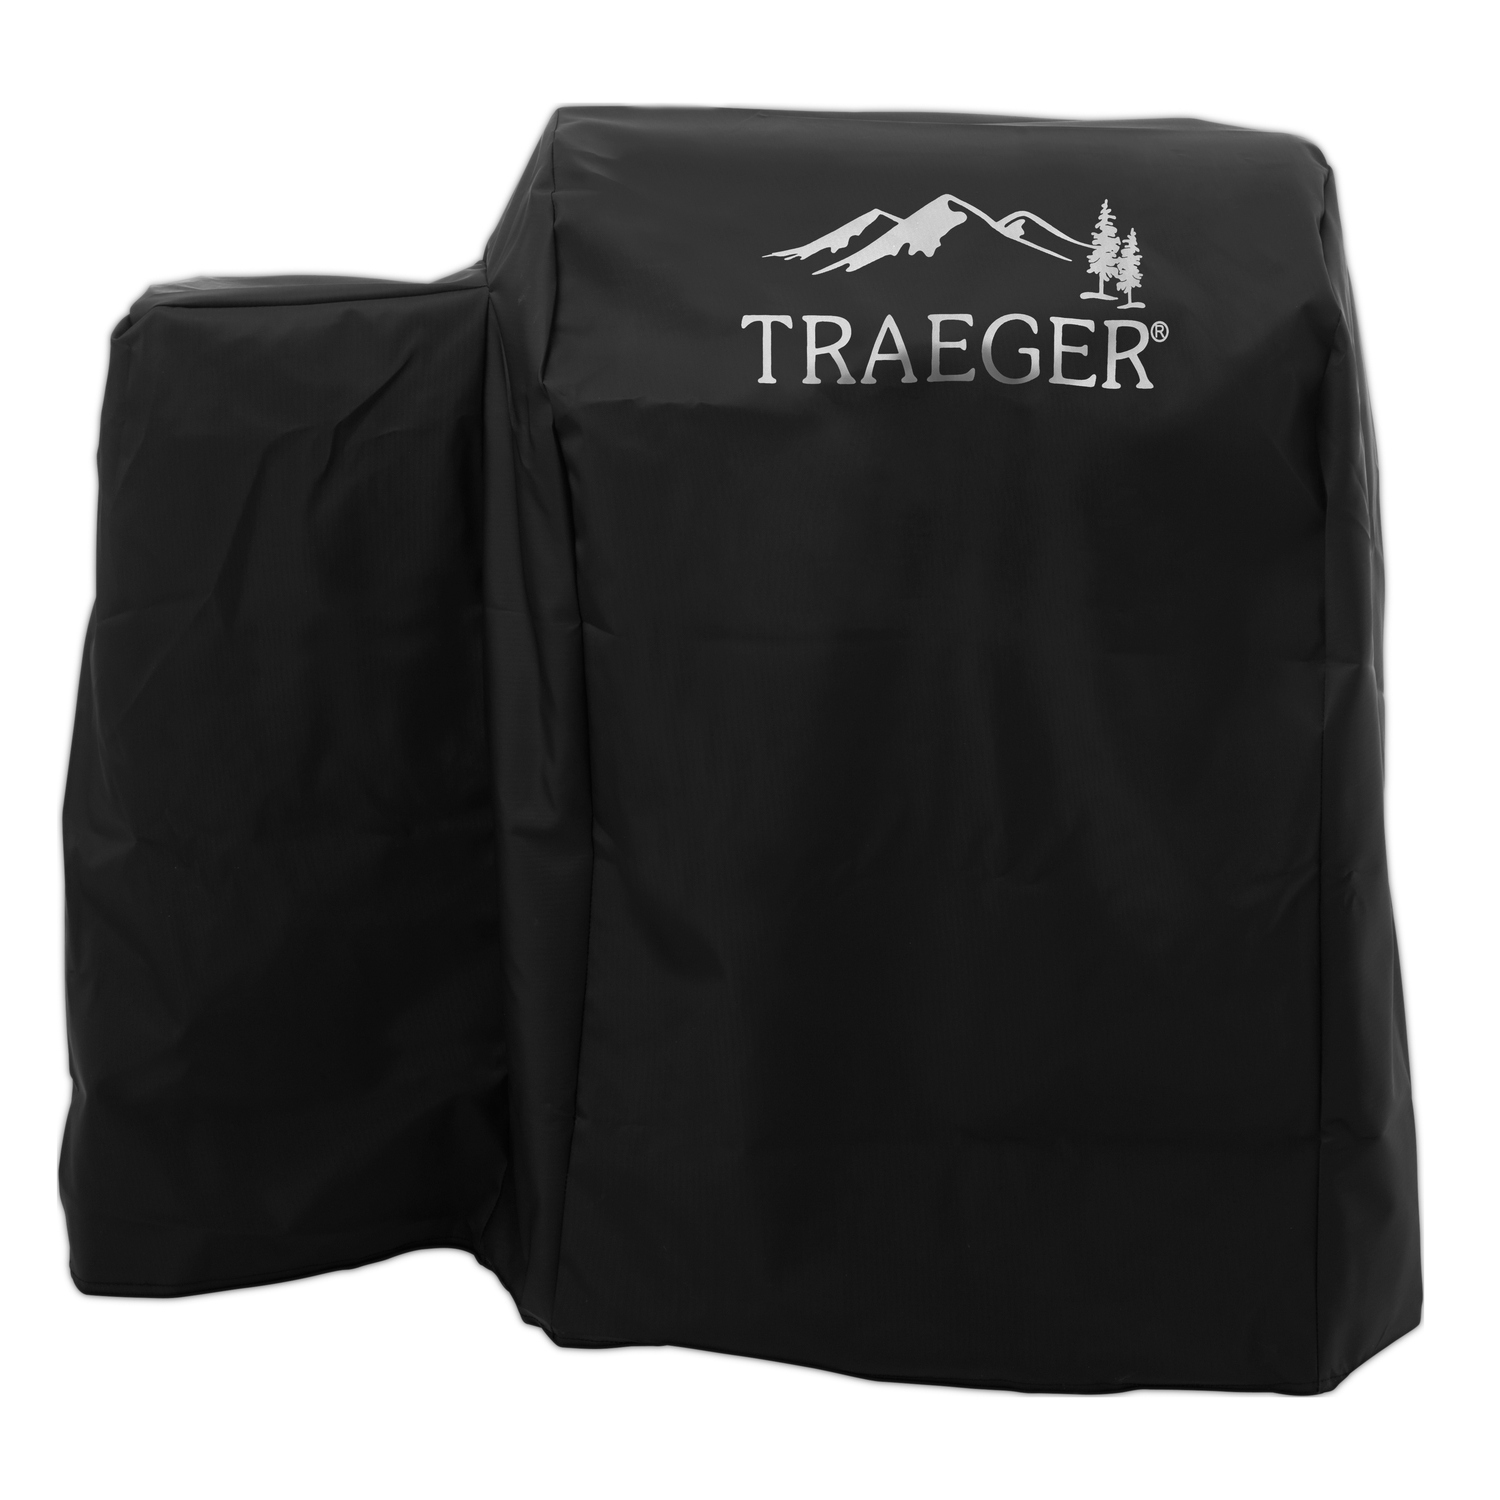 Traeger  Pro 20 Series, Tailgater and Junior grills  Black  Grill Cover  3 in. W x 10.25 in. H x 11.